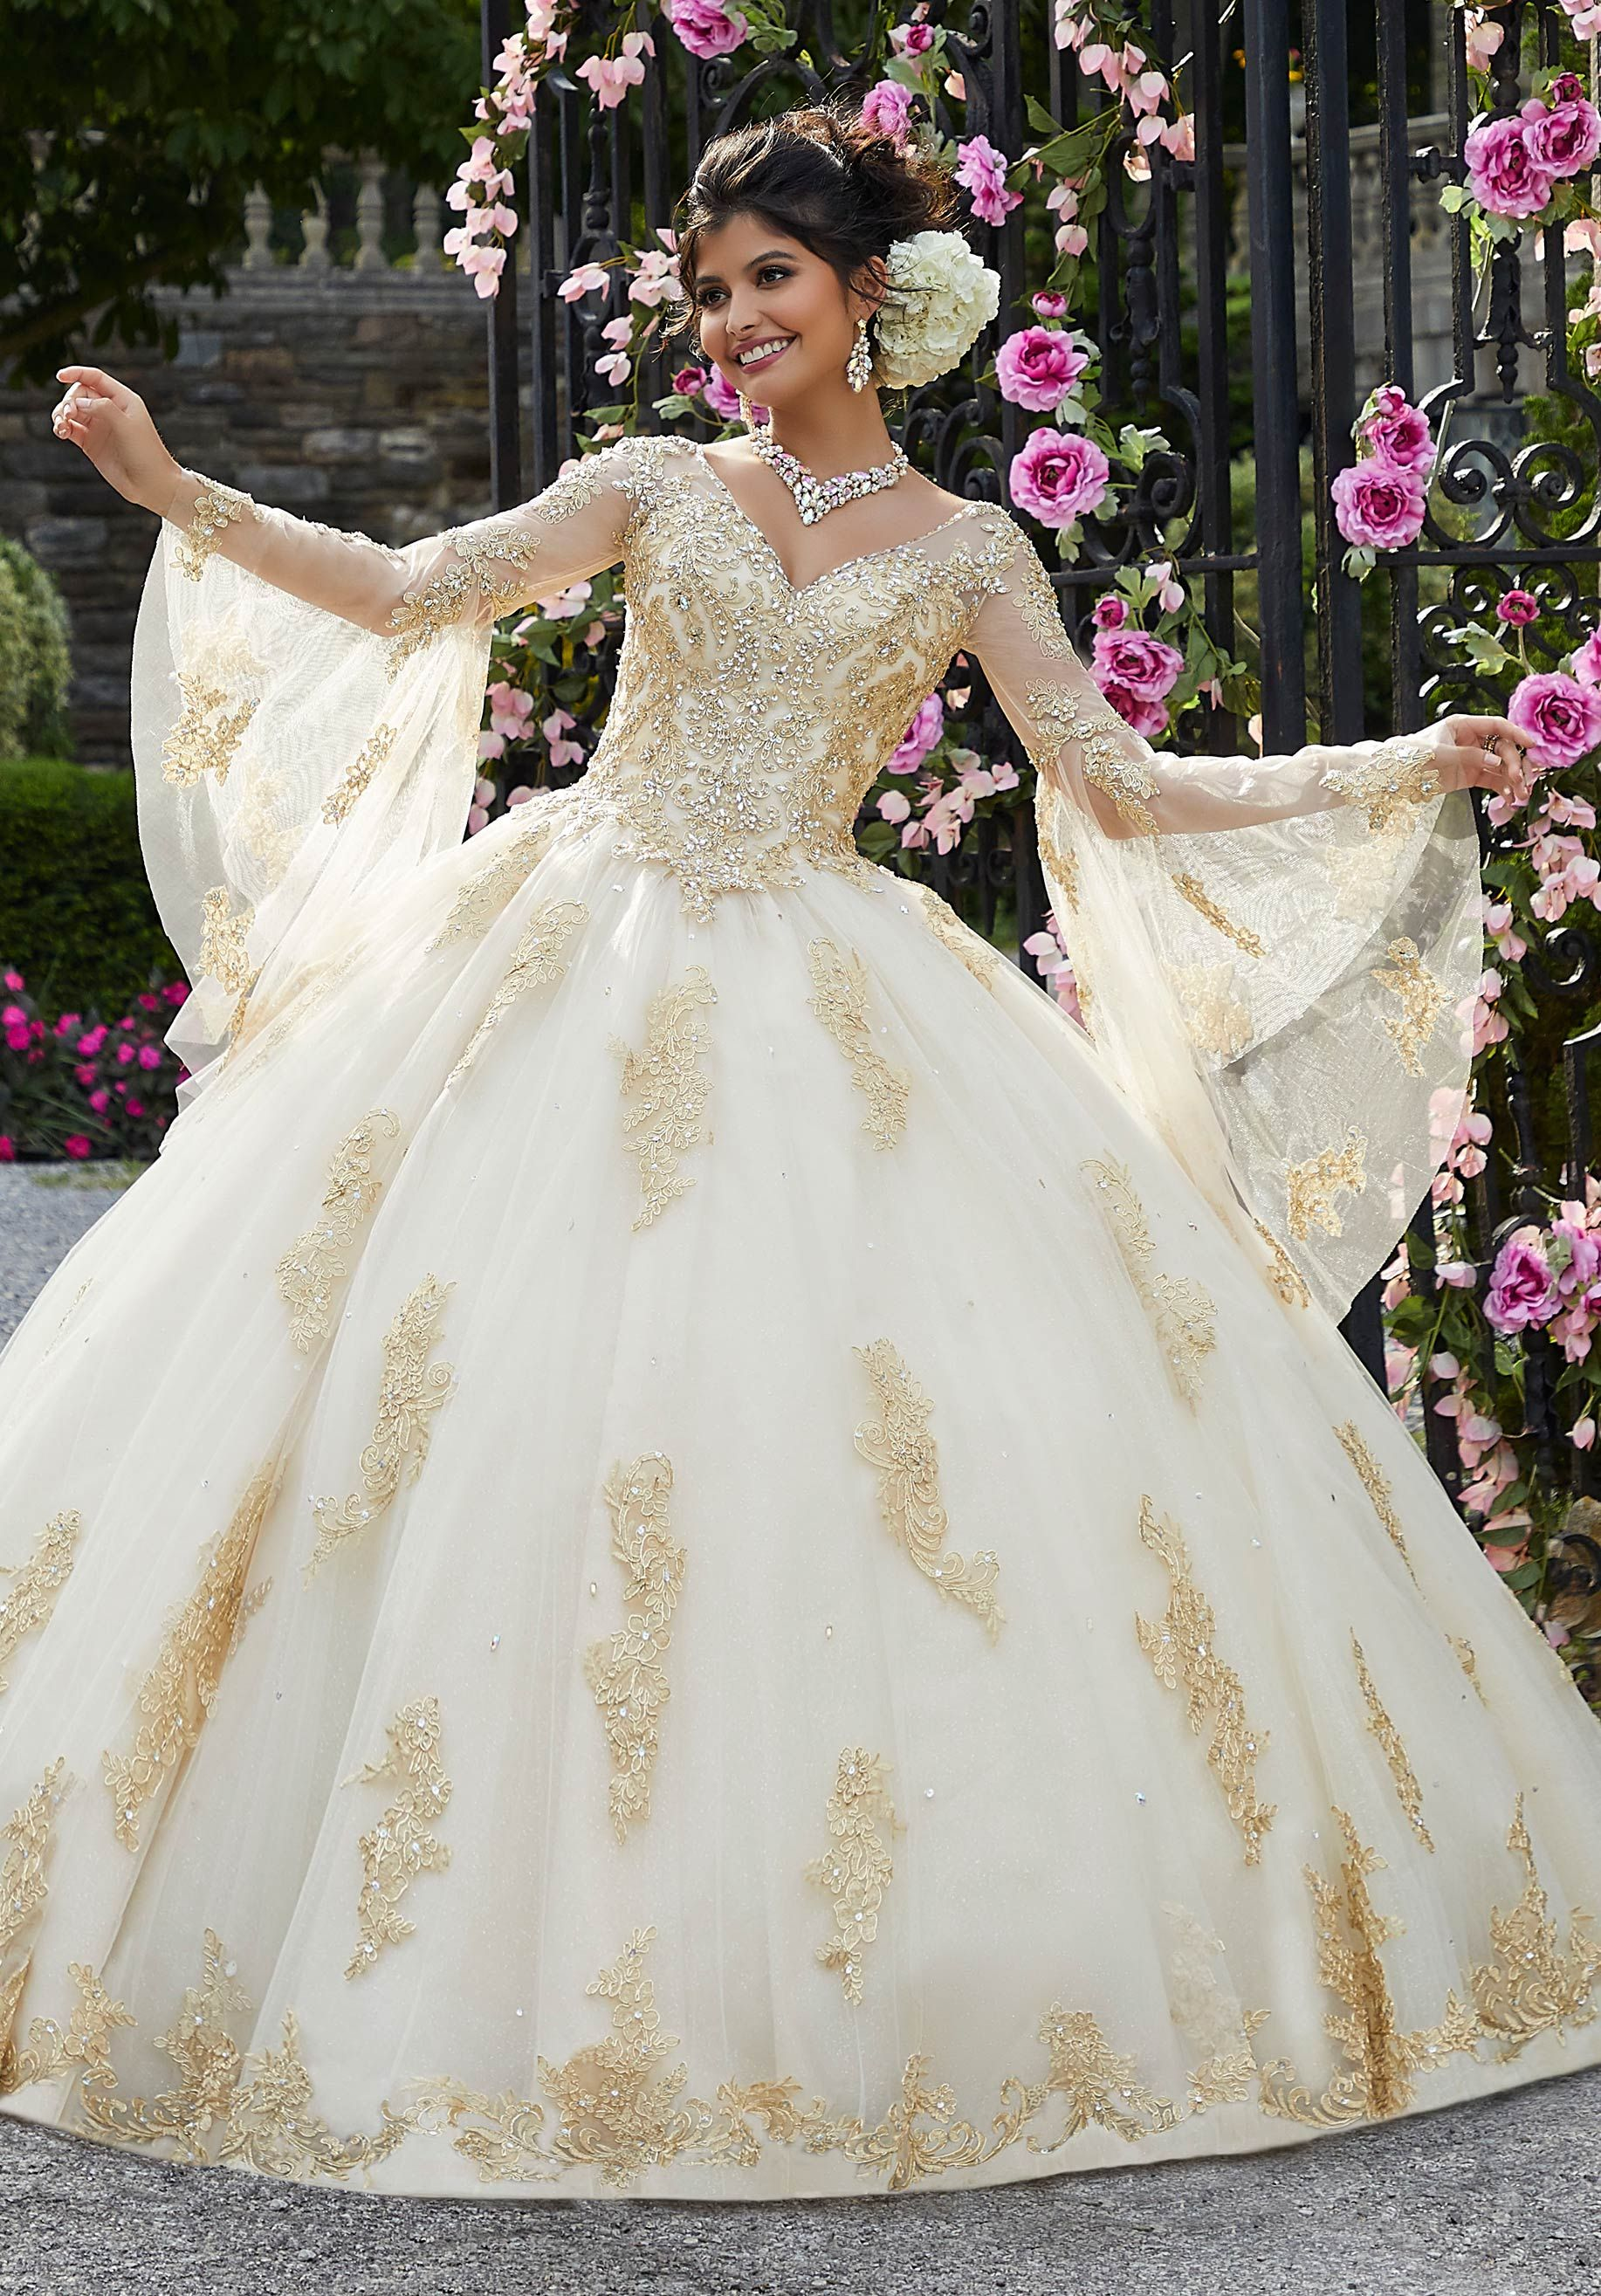 Metallic Lace Applique Quinceanera Ballgown Morilee Style 34021 In 2020 Quinceanera Dresses Gold Ball Gowns Pretty Quinceanera Dresses [ 2630 x 1834 Pixel ]